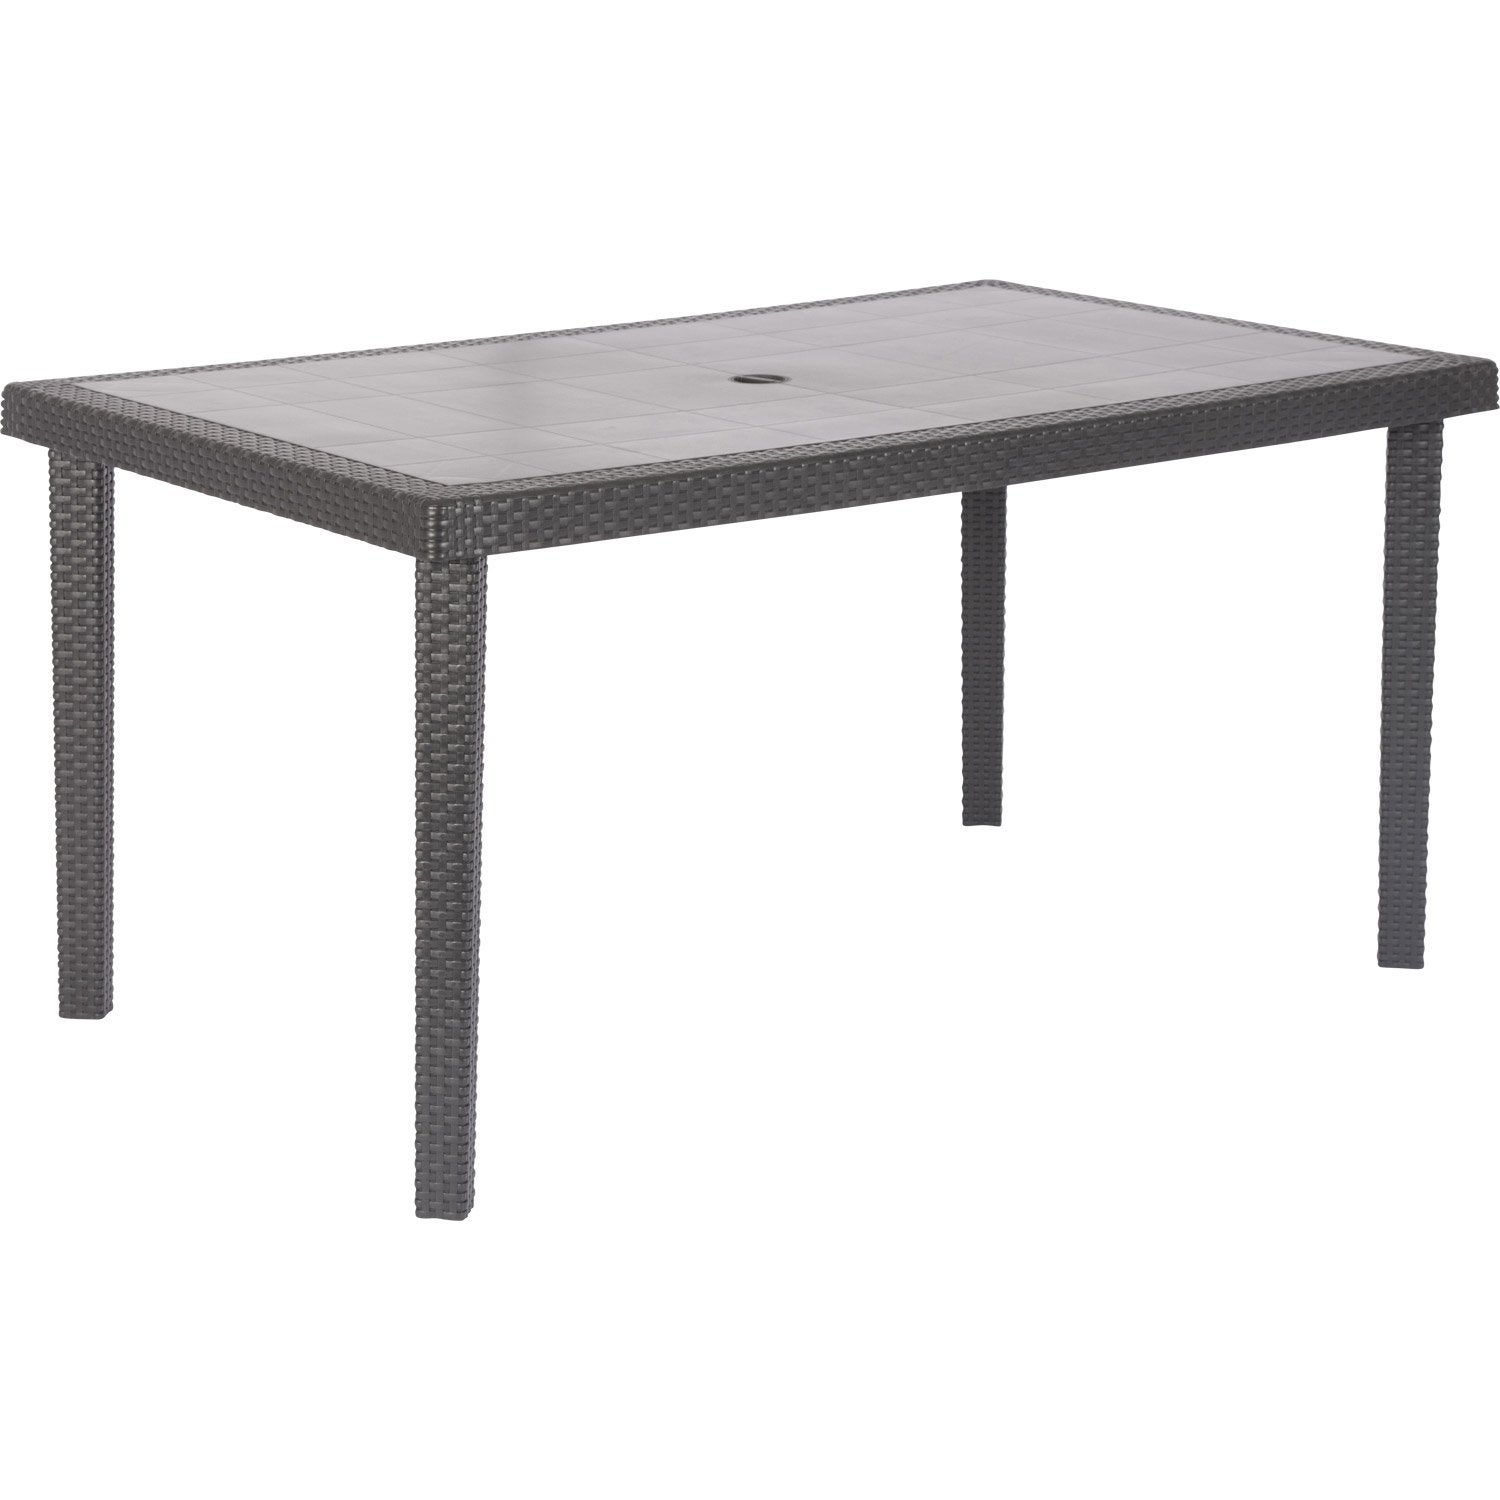 Table De Jardin Boh Me Rectangulaire Anthracite 6 Personnes Leroy Merlin